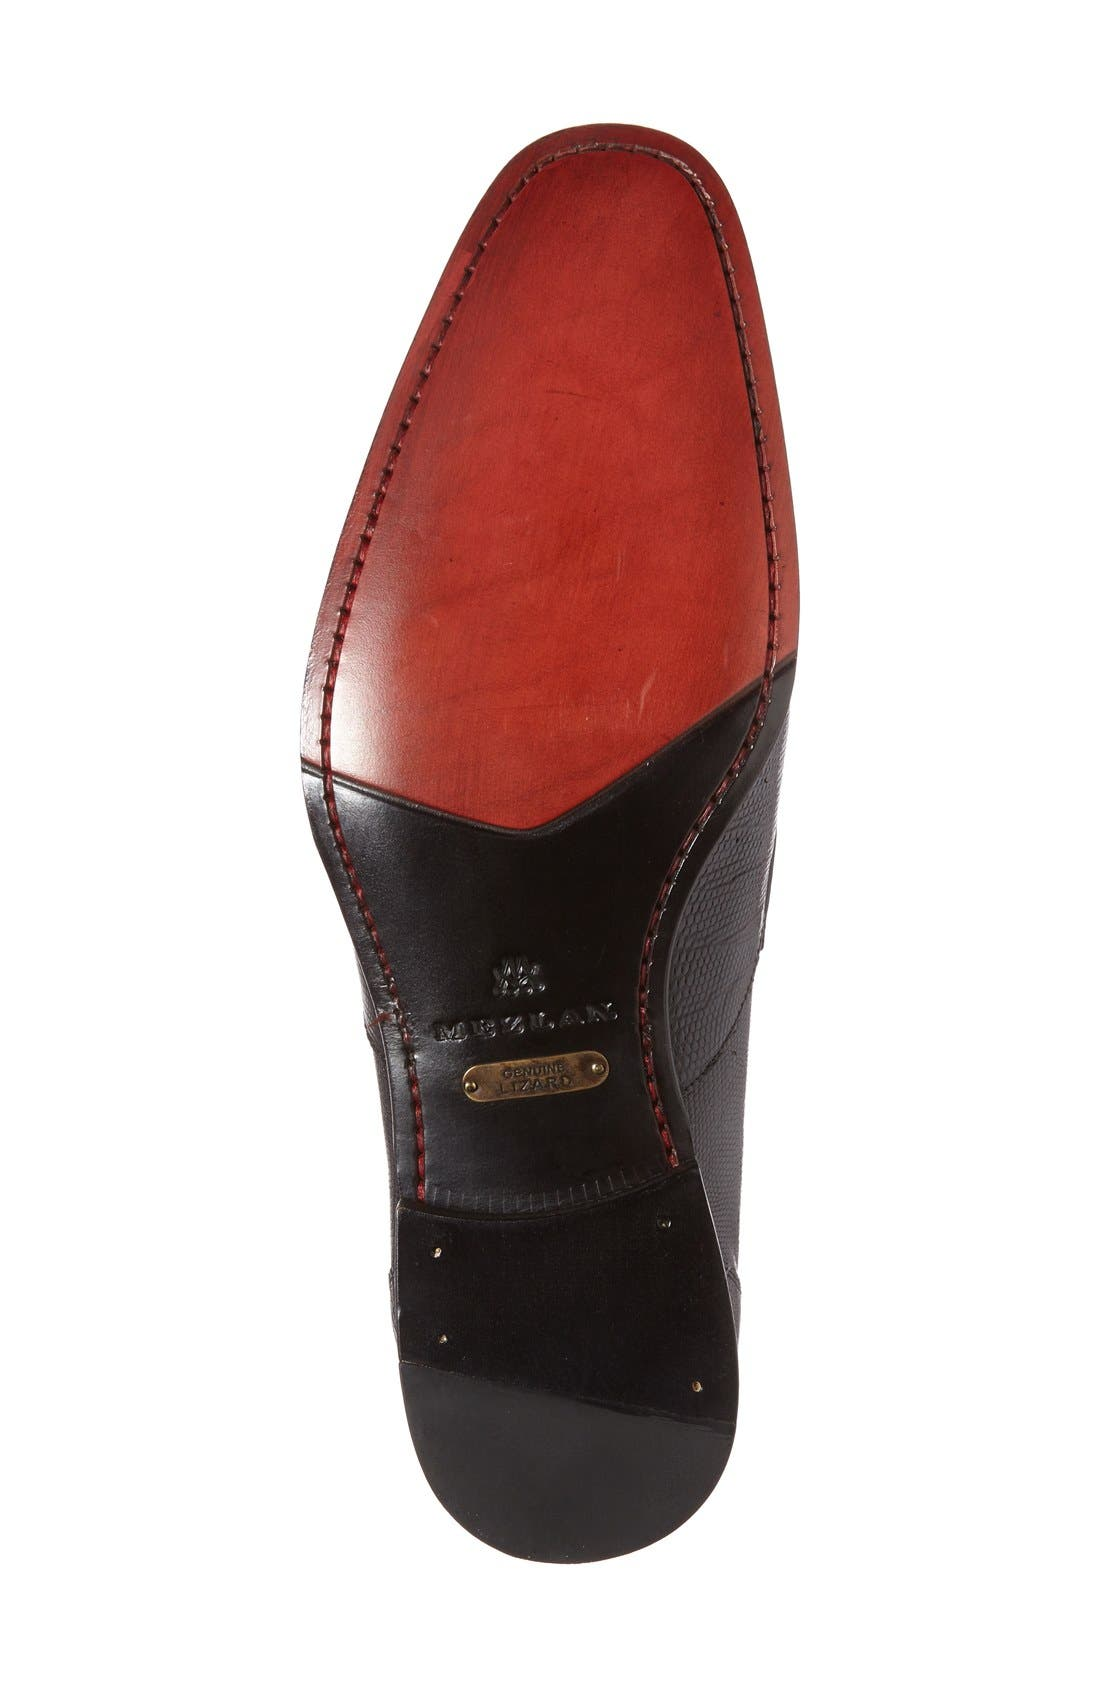 Alternate Image 4  - Mezlan 'Lipari' Lizard Leather Penny Loafer (Men)